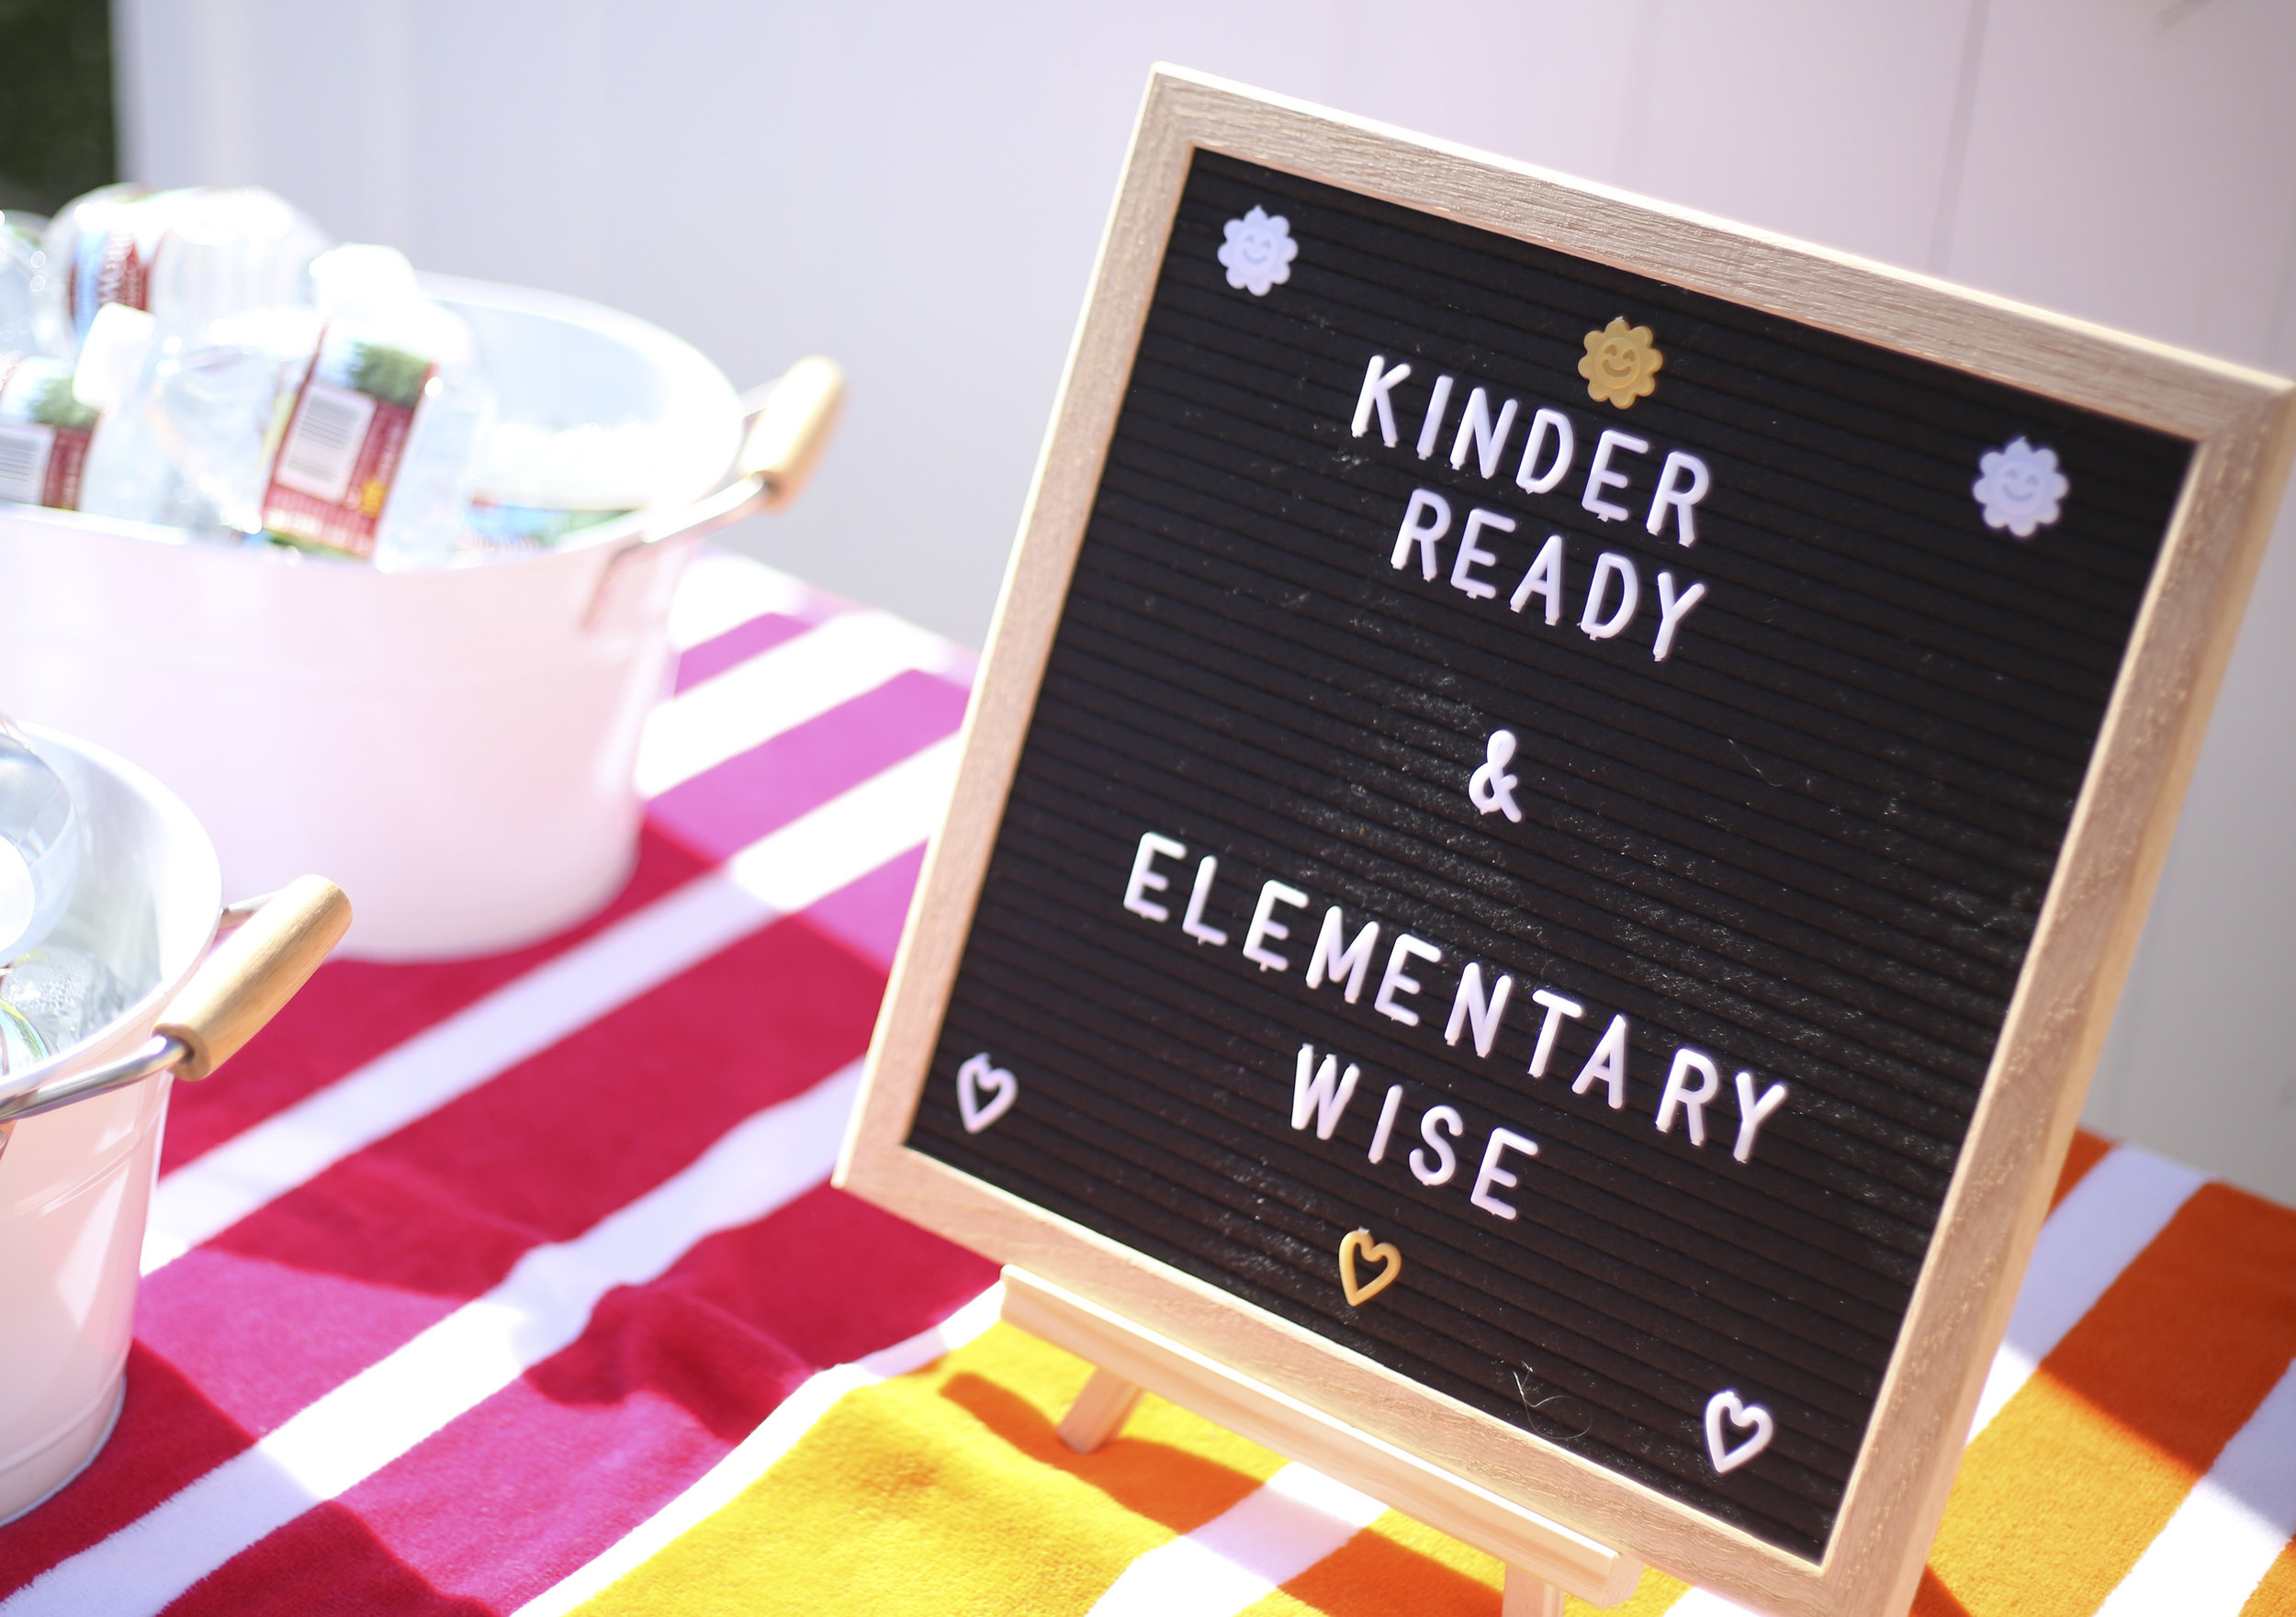 Looking for a learning program which is progressive? Check out  Kinder Ready